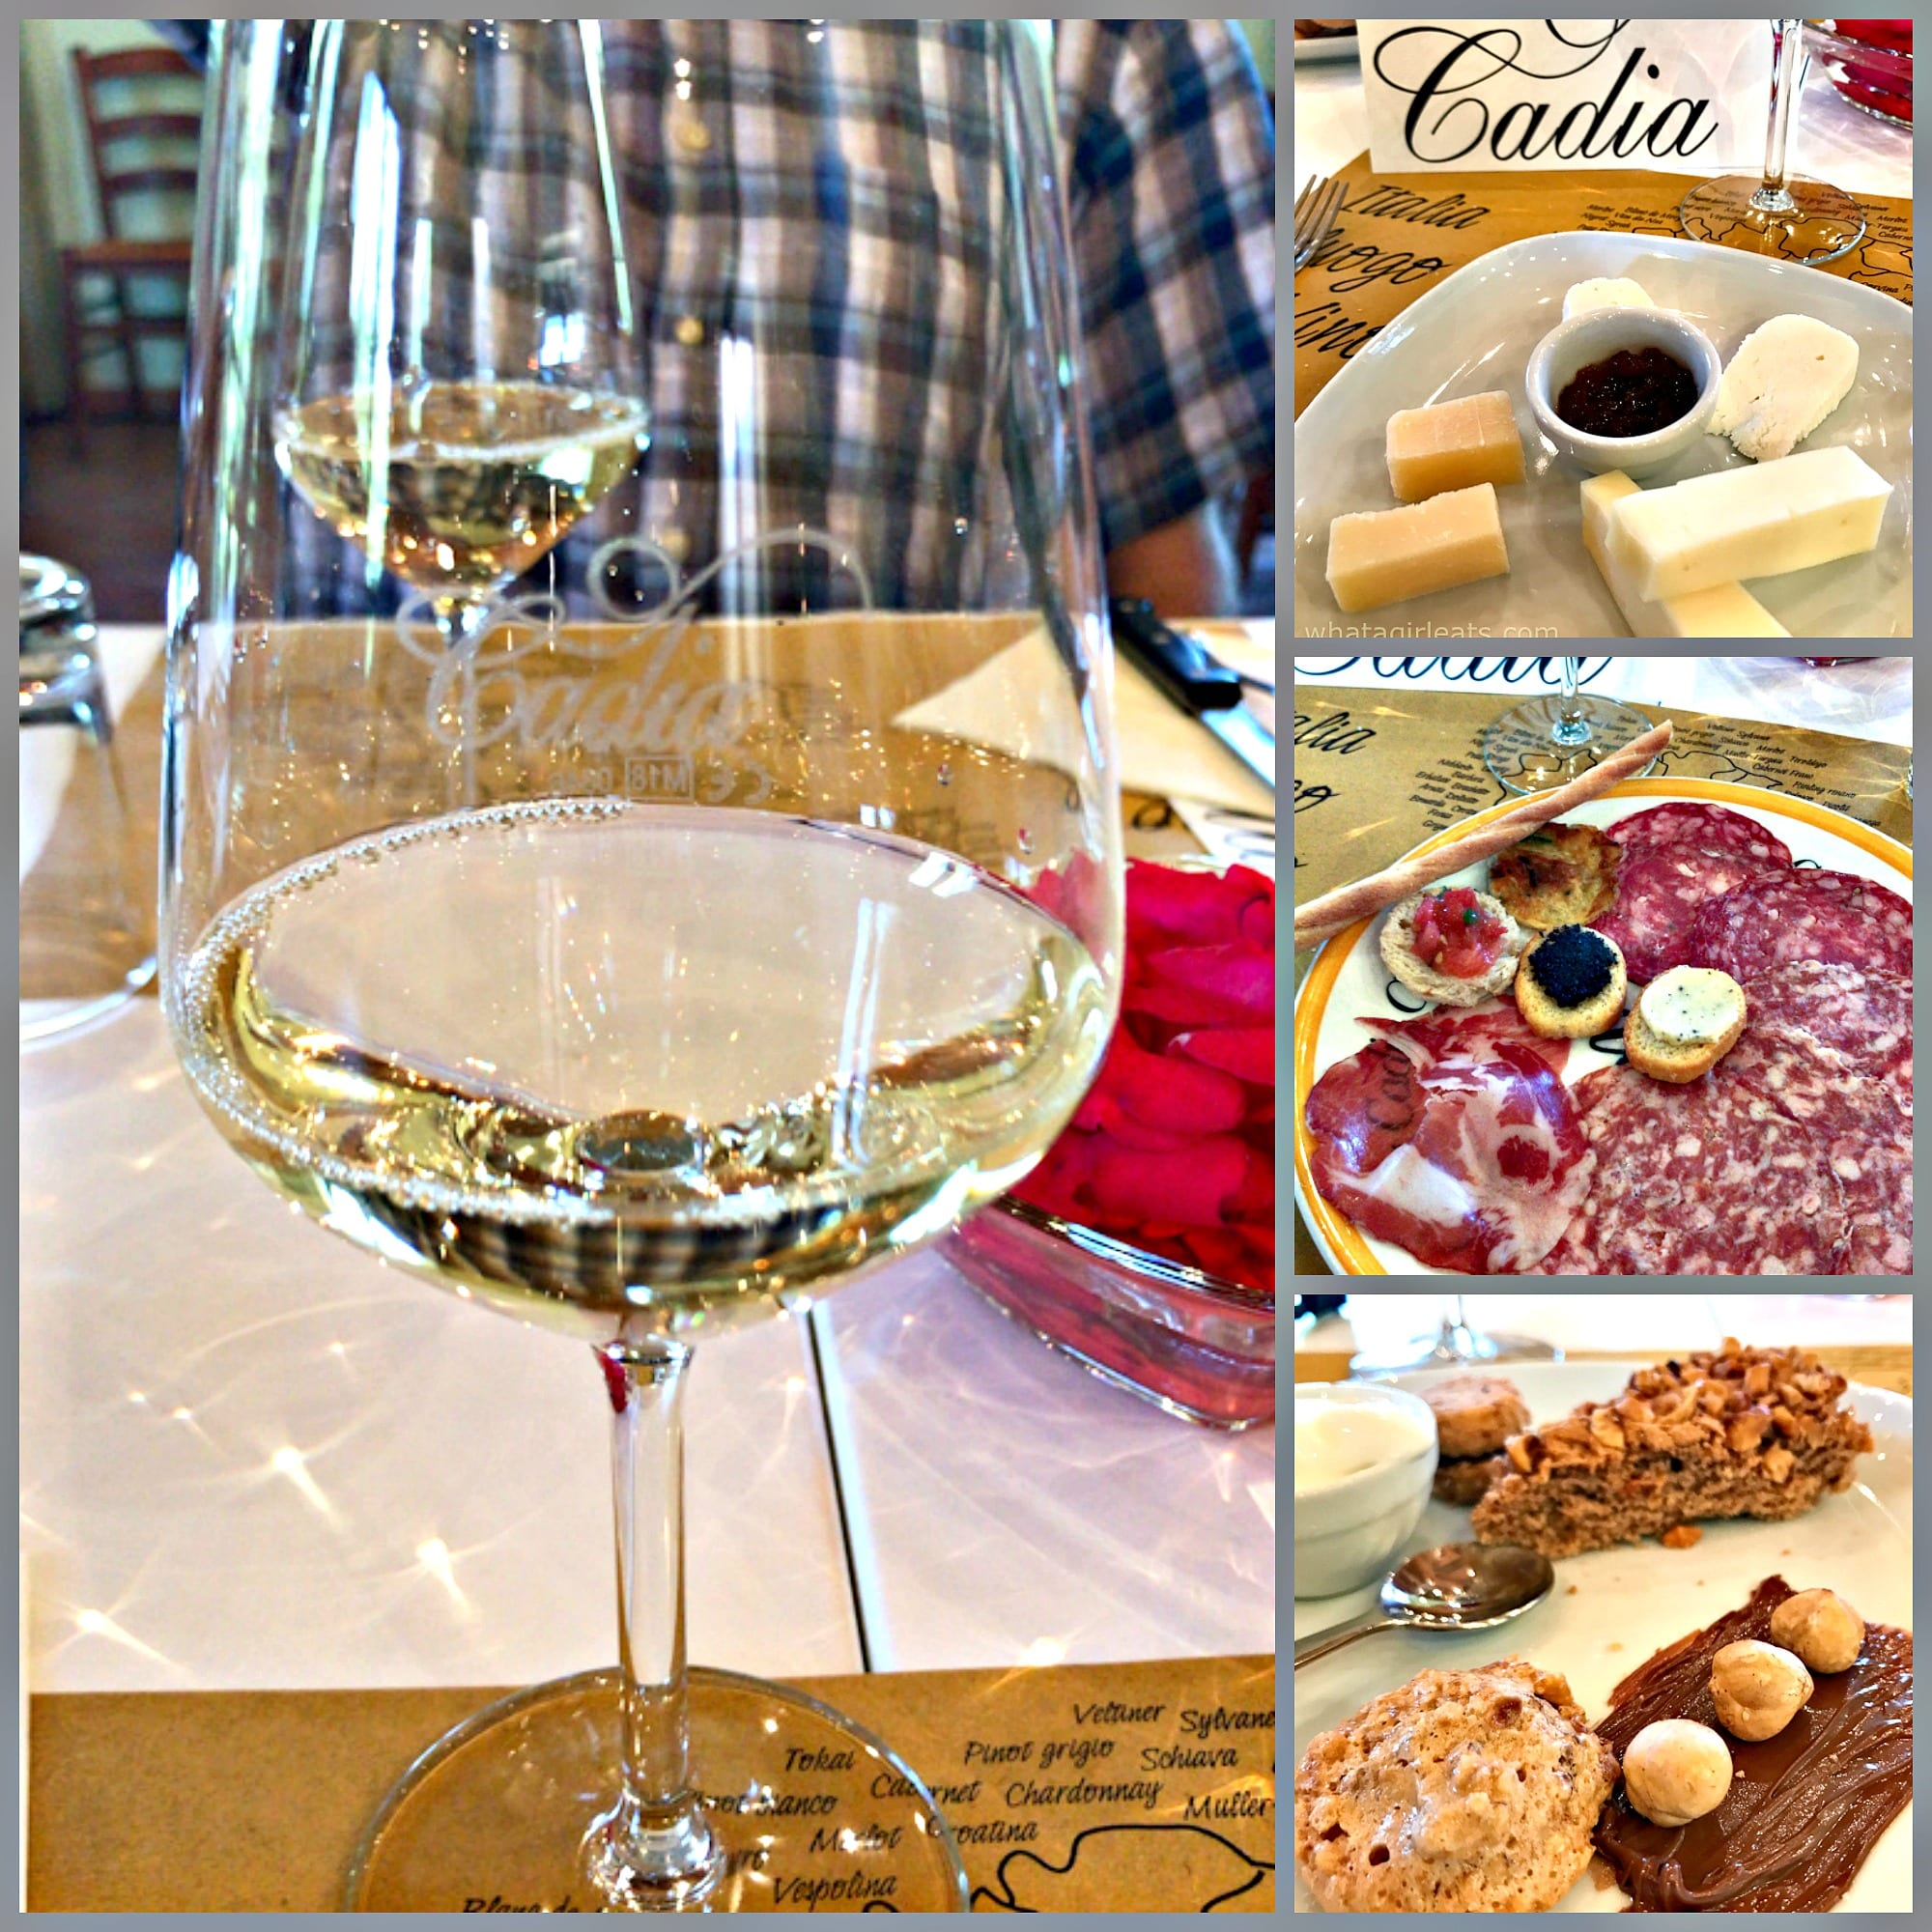 Cadia winery collage